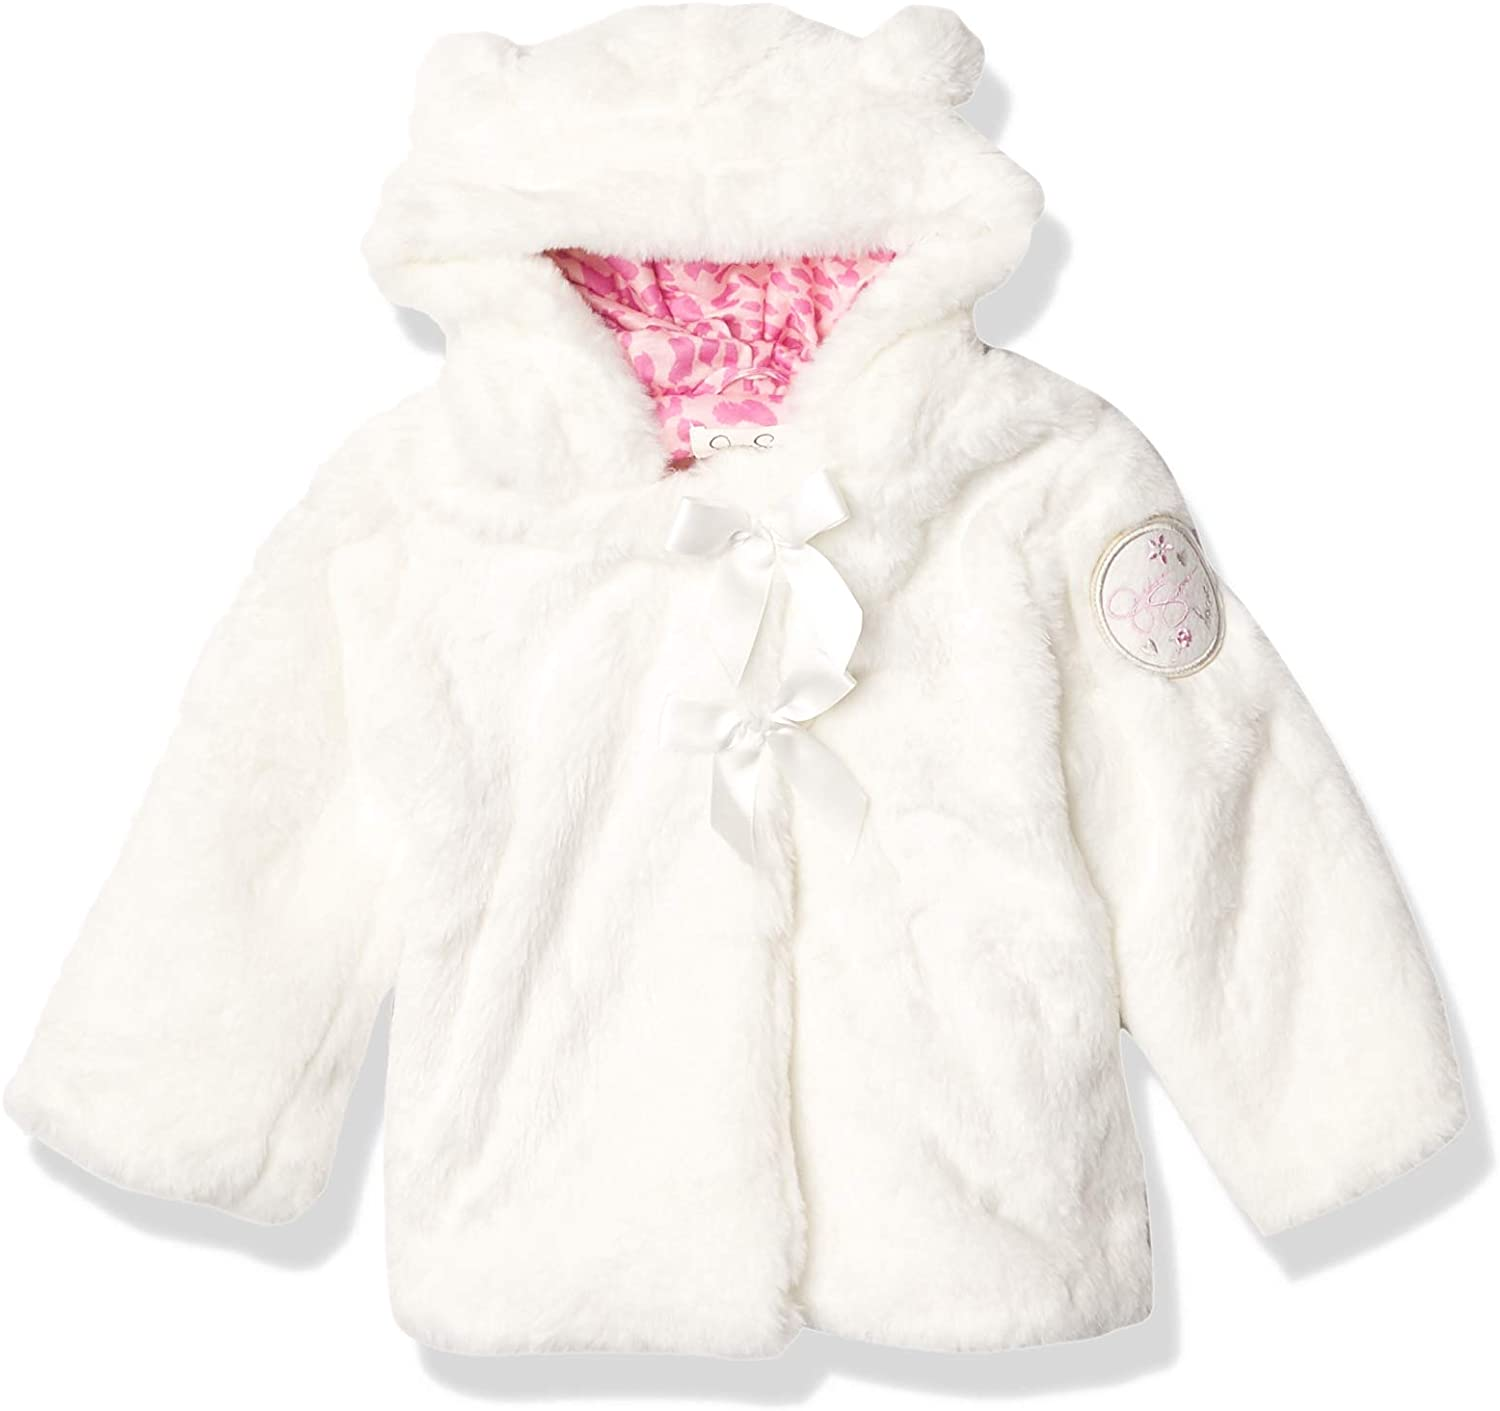 Jessica favorite Simpson Baby Heavy Large-scale sale Outerwear Girls'